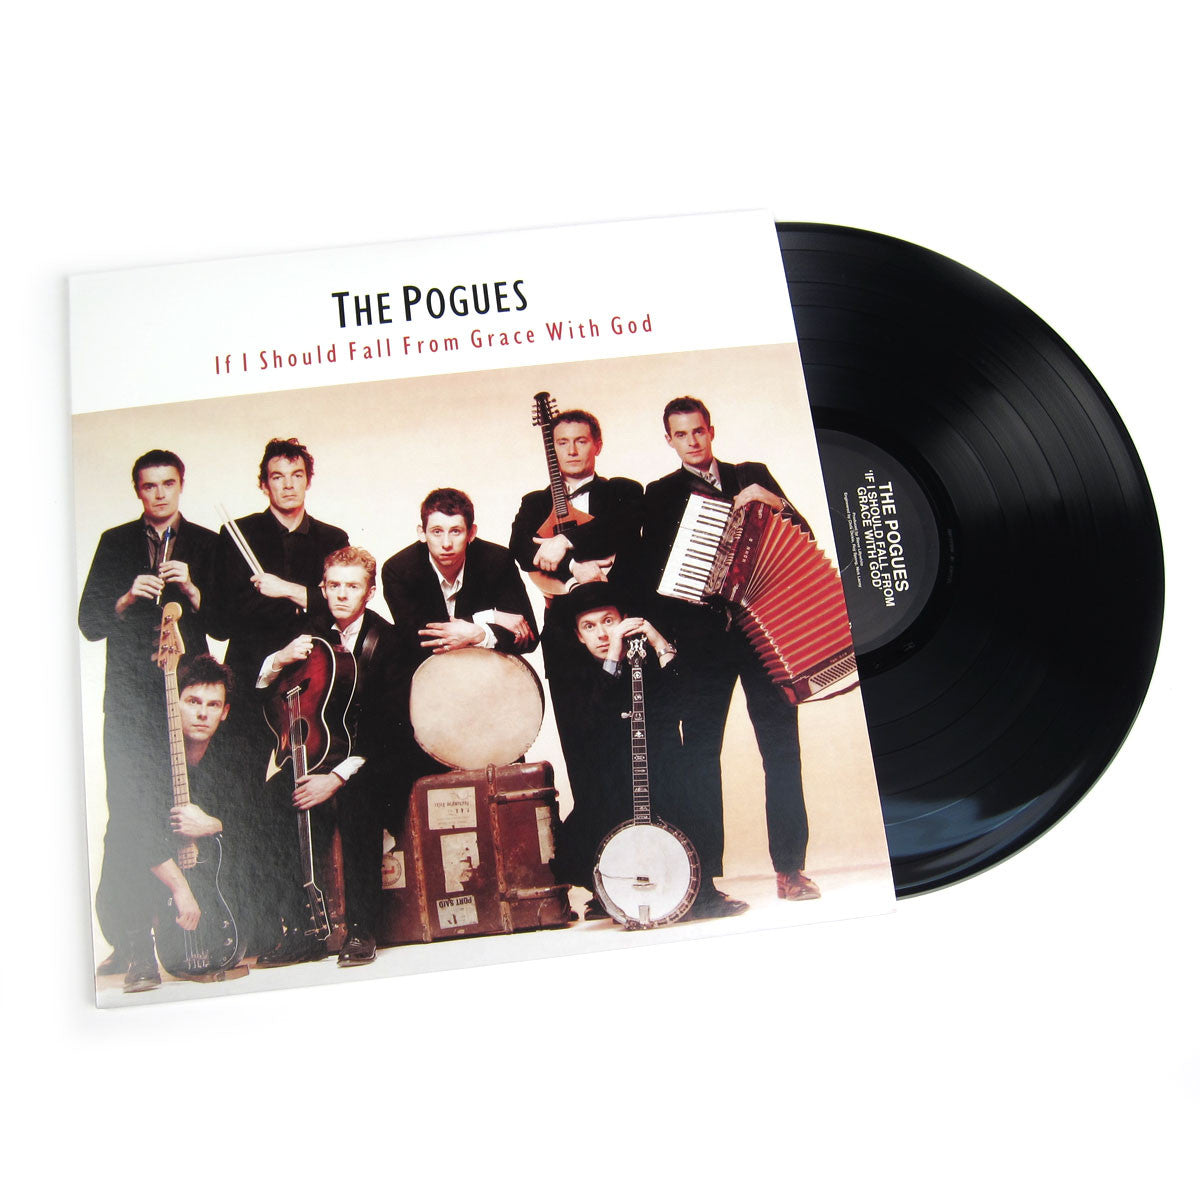 The Pogues: If I Should Fall From Grace With God (180g) Vinyl LP